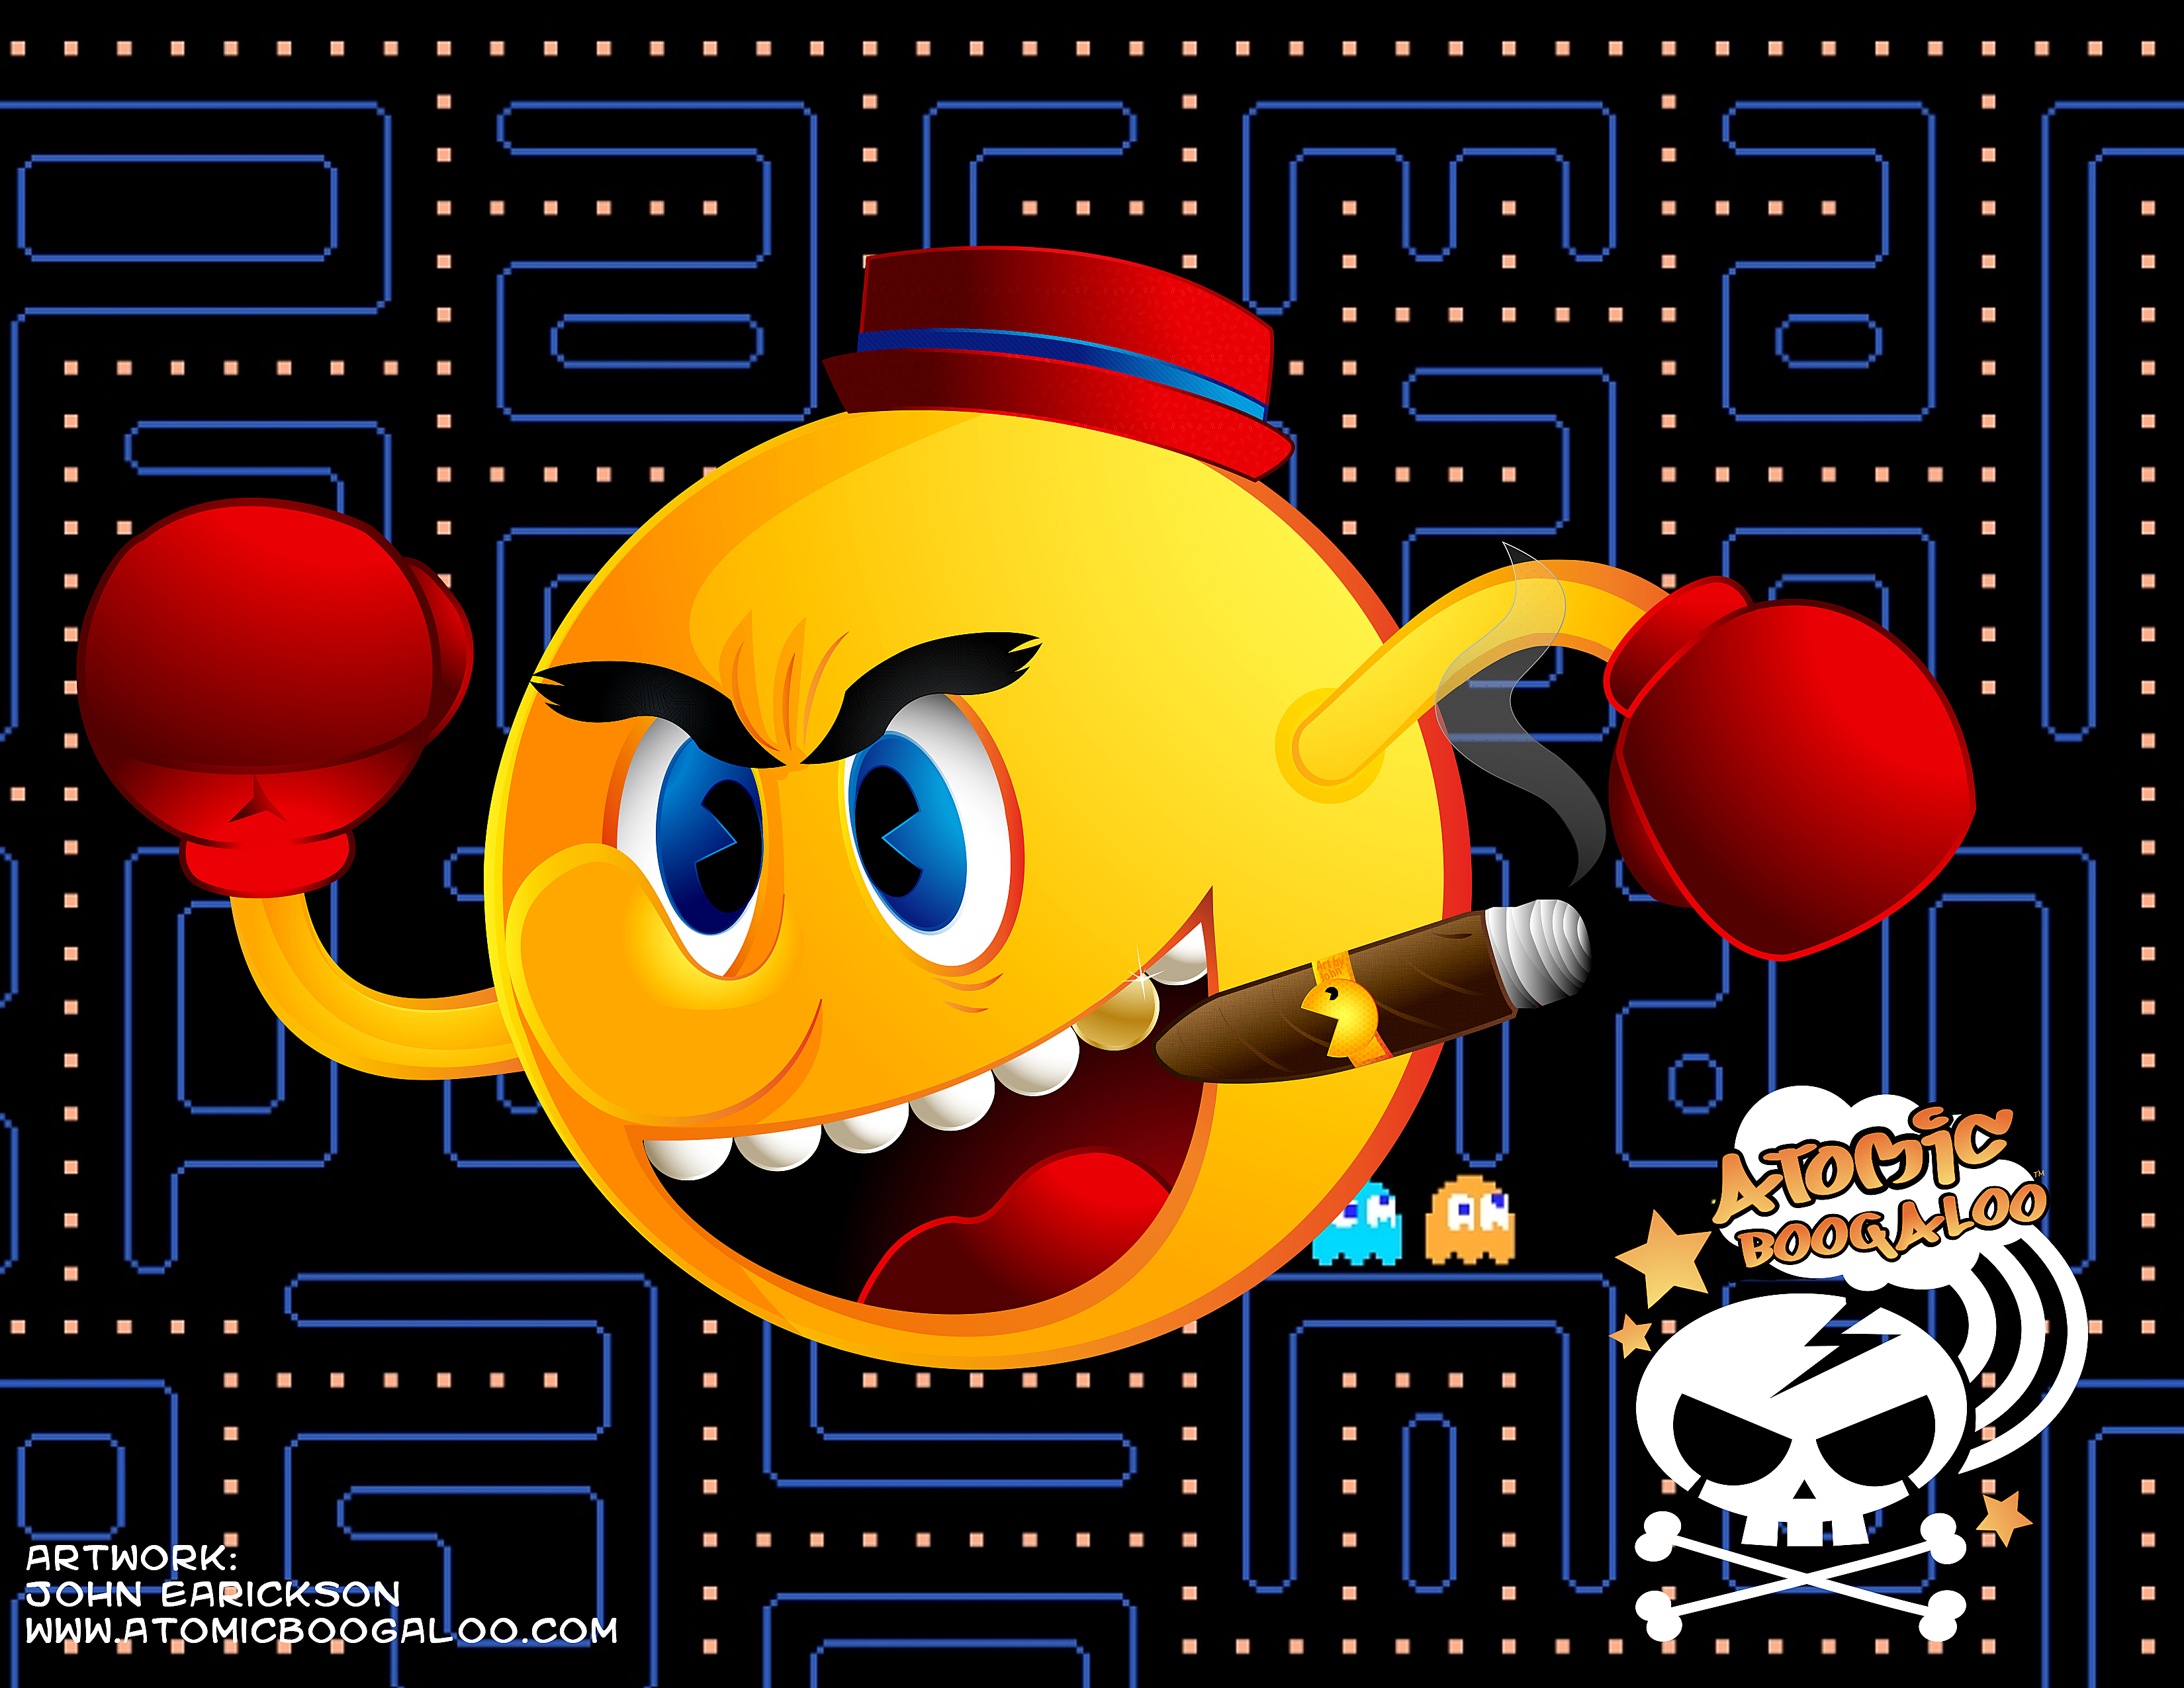 Pac-man Client illustration